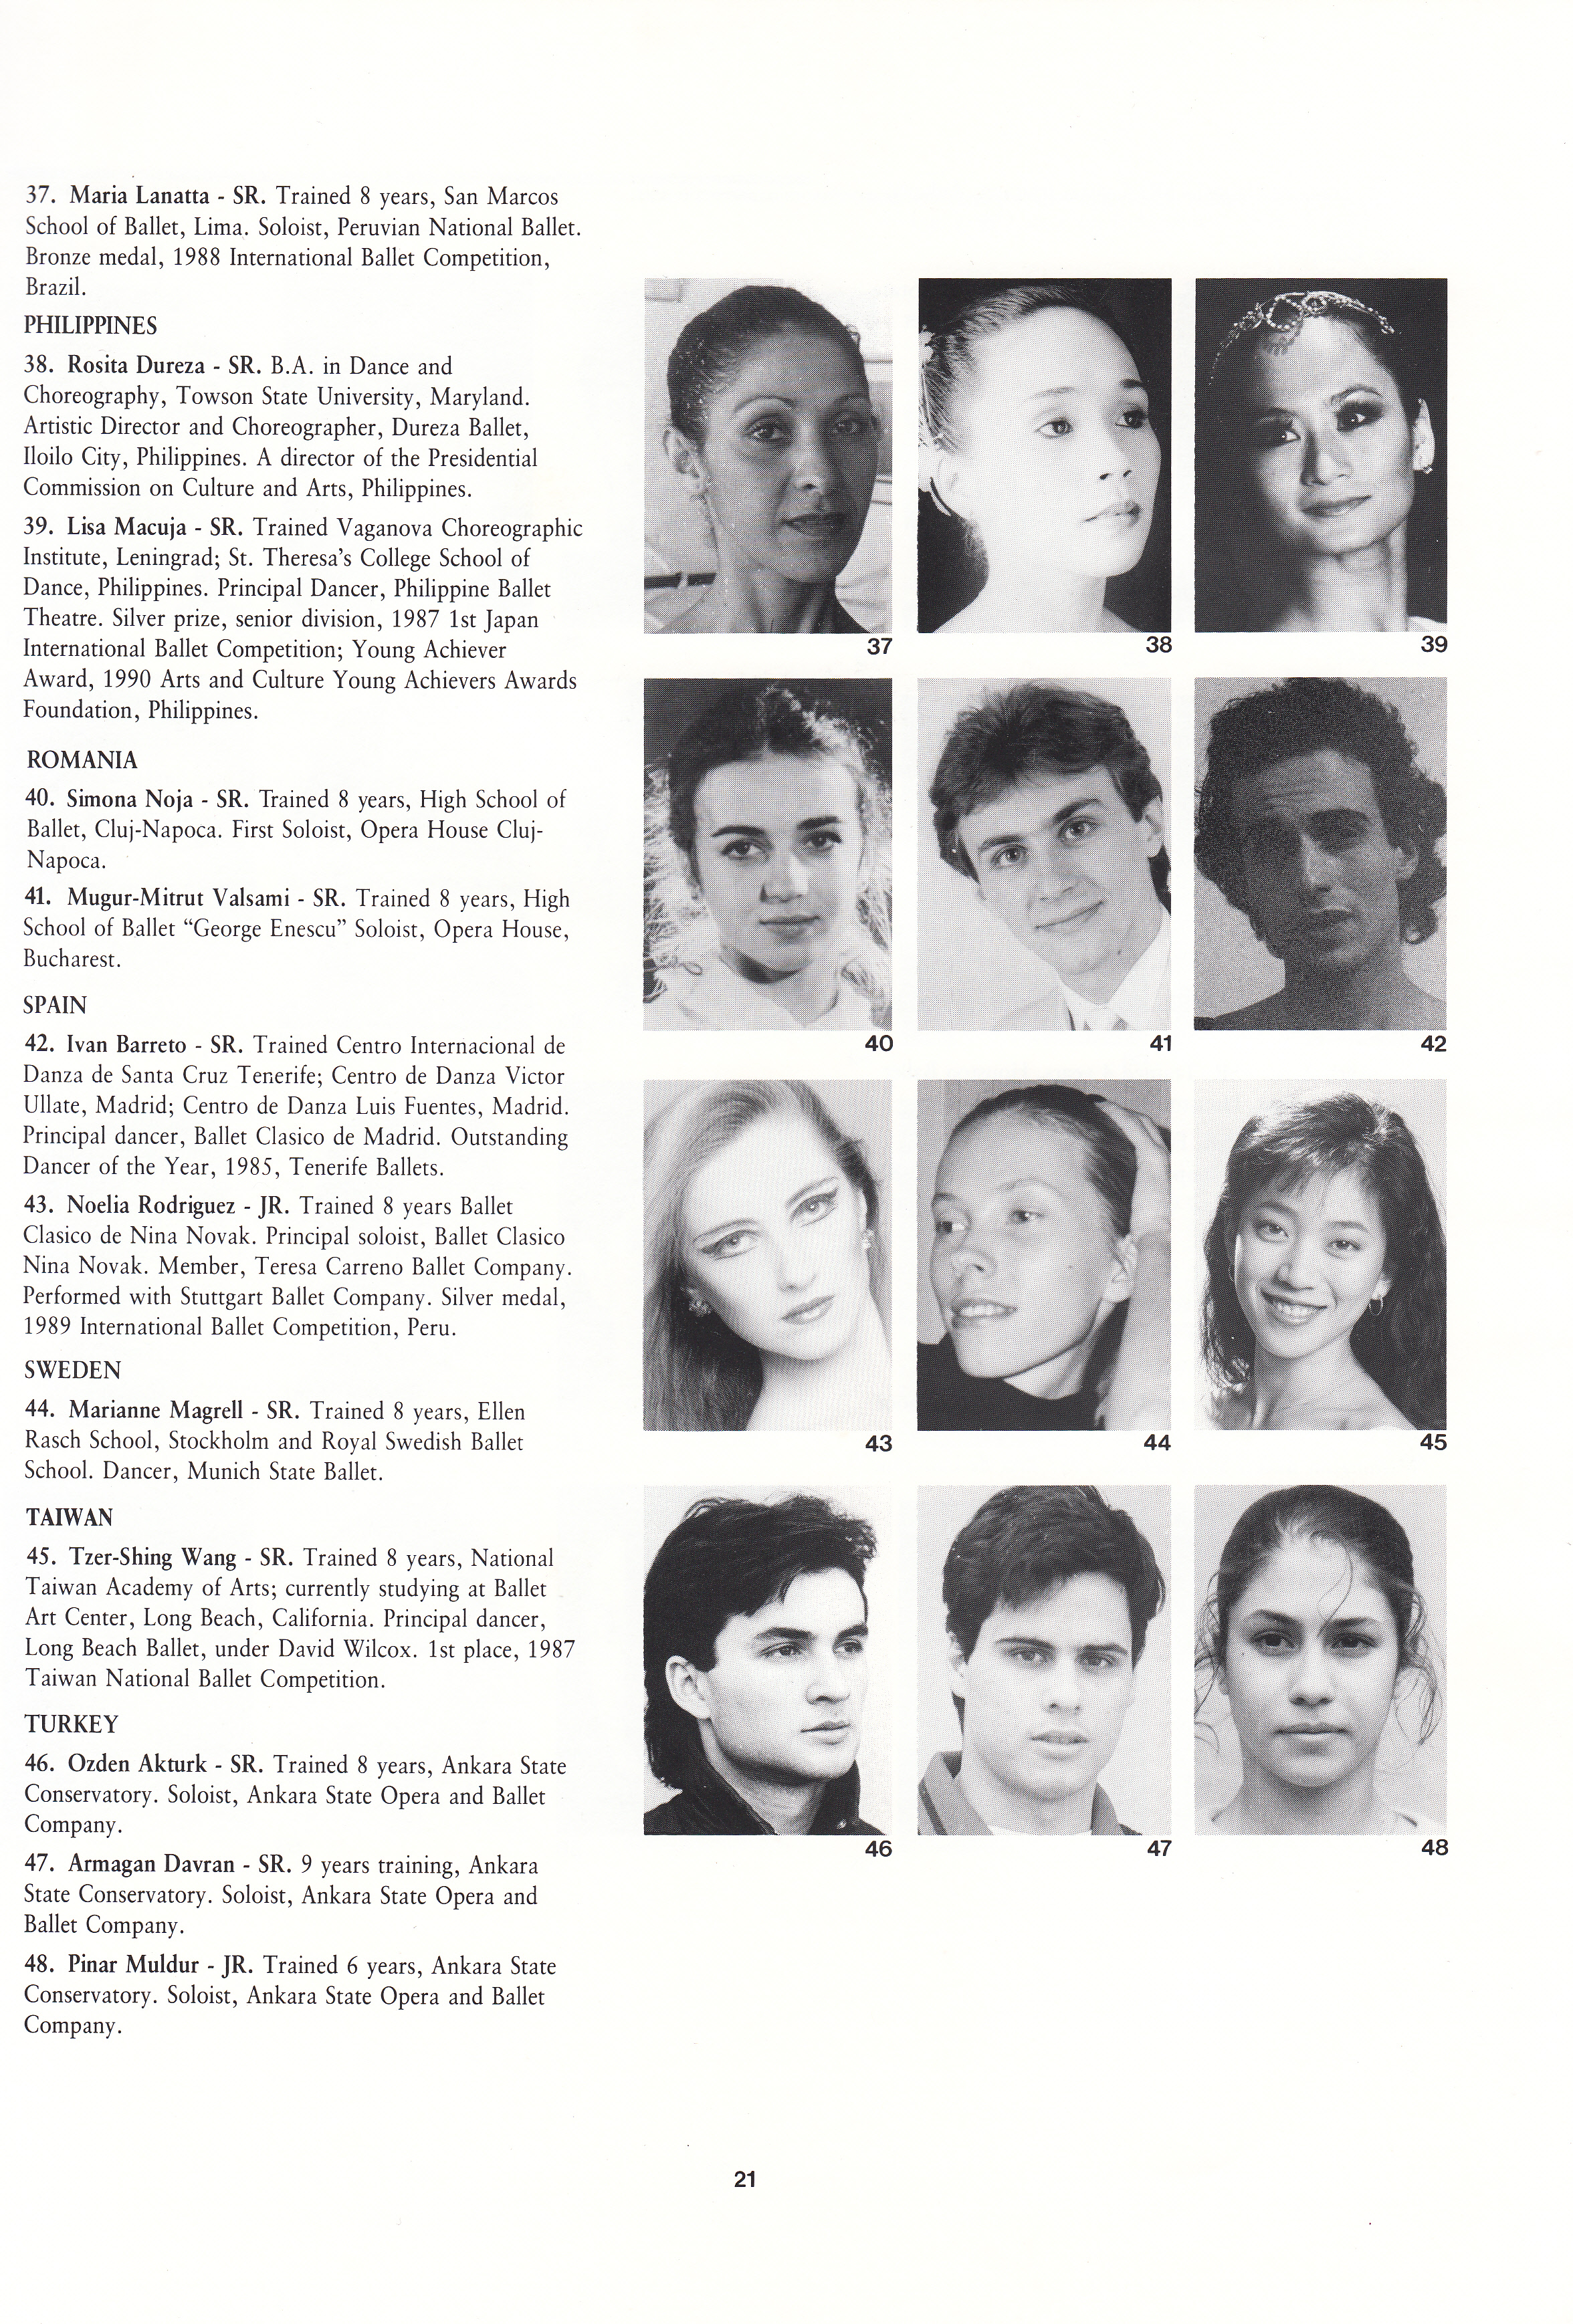 Lisa's photo (top right) appears in the USA IBC souvenir program as one of the accepted competitors. Back then, participants were selected based on their credentials including their background in training, their current affiliation, the roles they have danced and the awards they have won. At the time, Lisa was a principal dancer of Philippine Ballet Theater and was a silver prize honoree at the First Japan Ballet Competition. Nowadays, competitors are screened through video submissions.